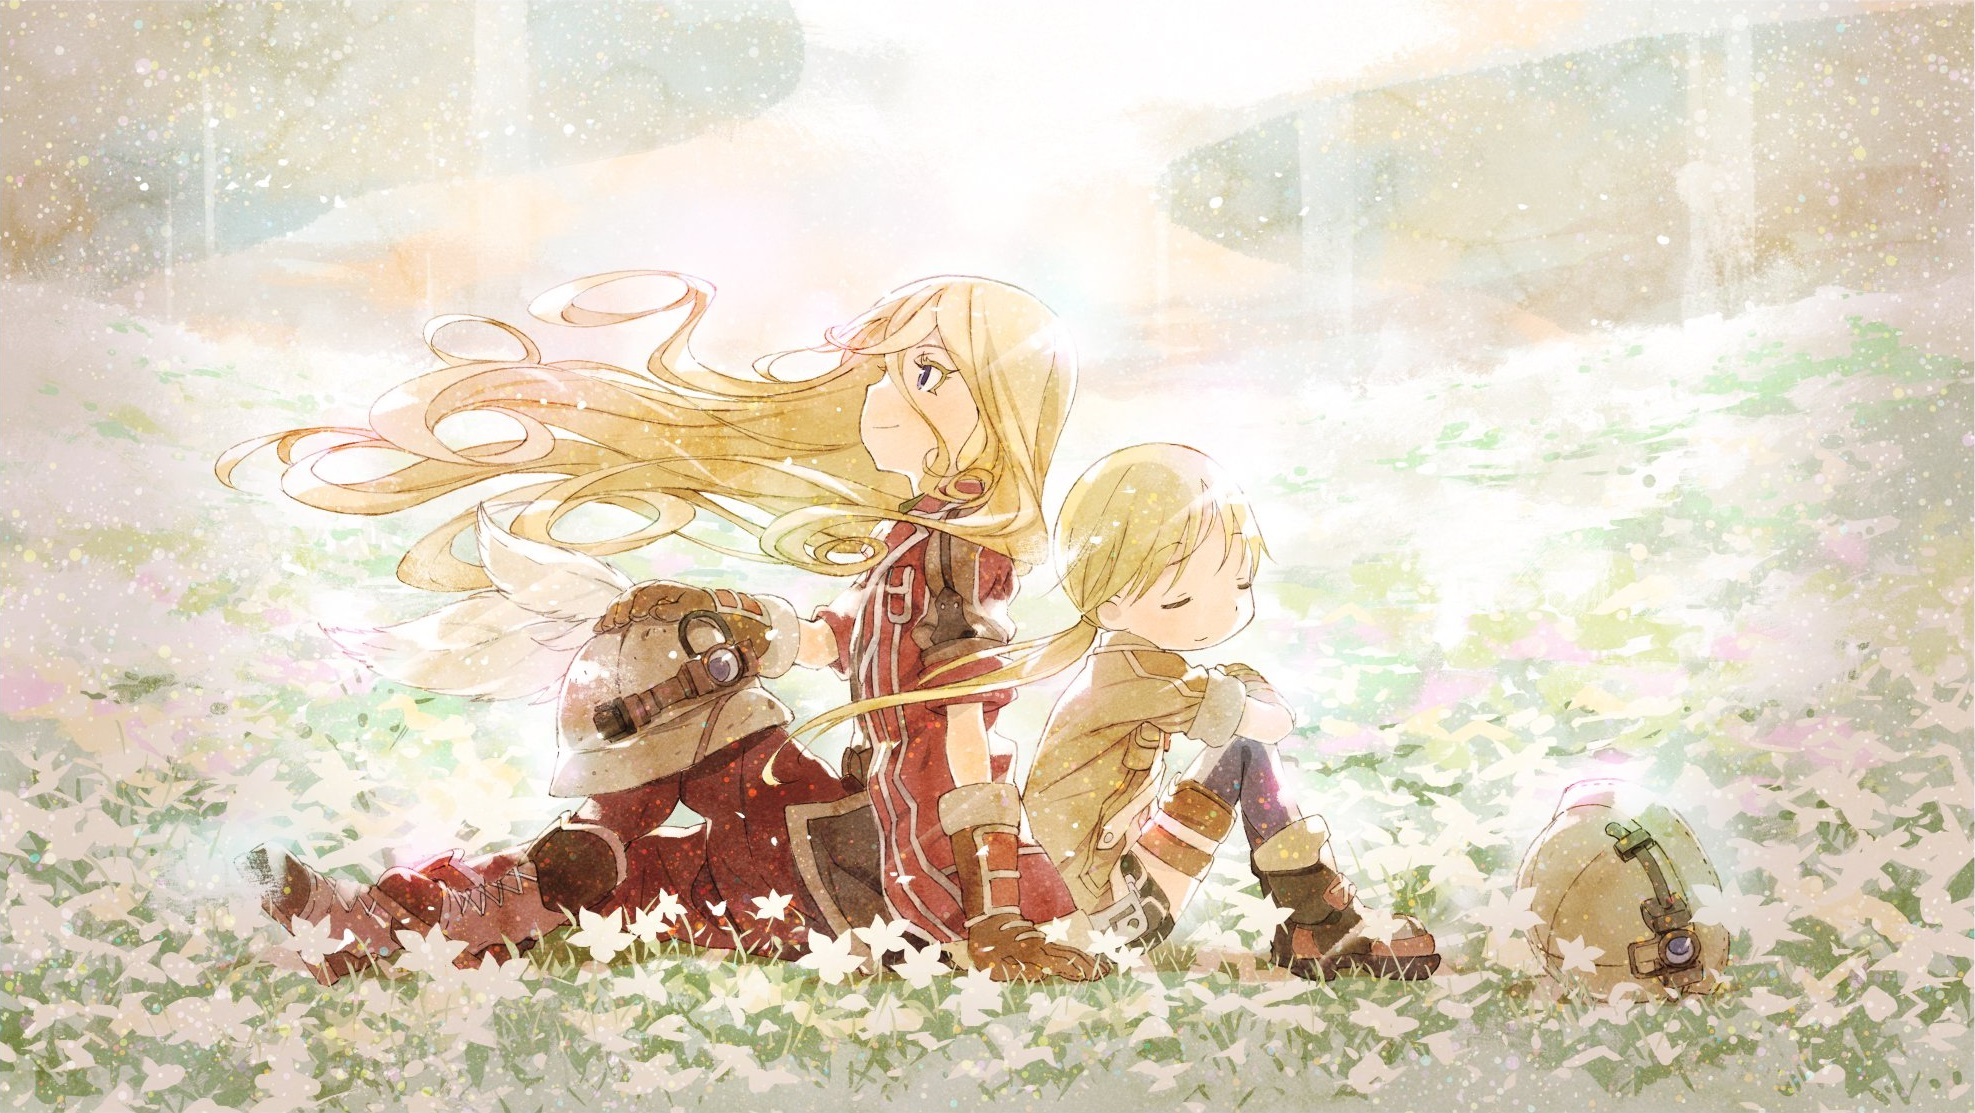 Made in Abyss Lyza Made in Abyss flowers Riko Made in 1975x1113